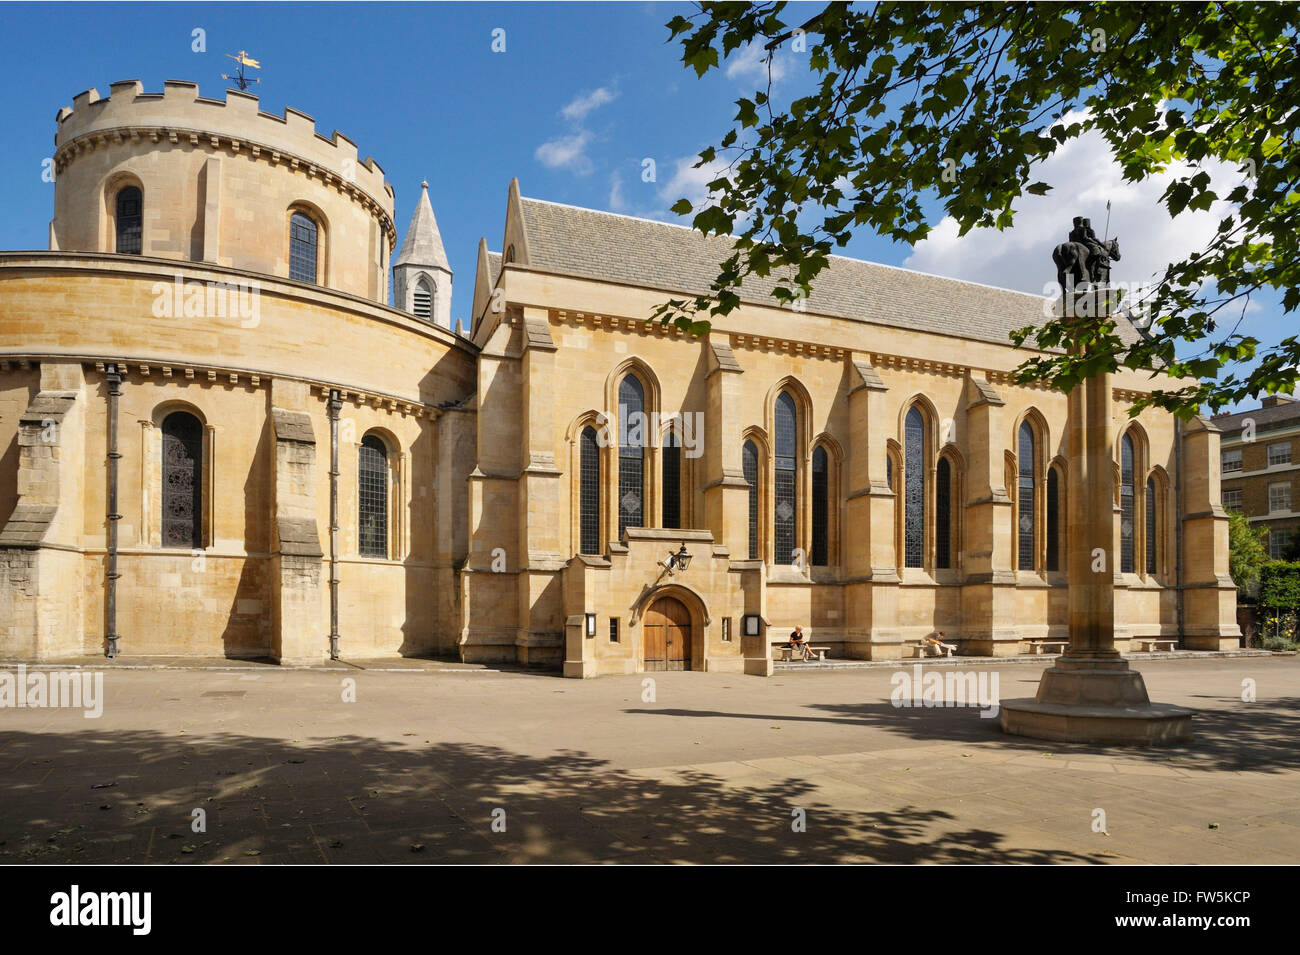 exterior of Middle Temple Church, first built by the Knights Templar in the 12th century. The legal chambers of - Stock Image